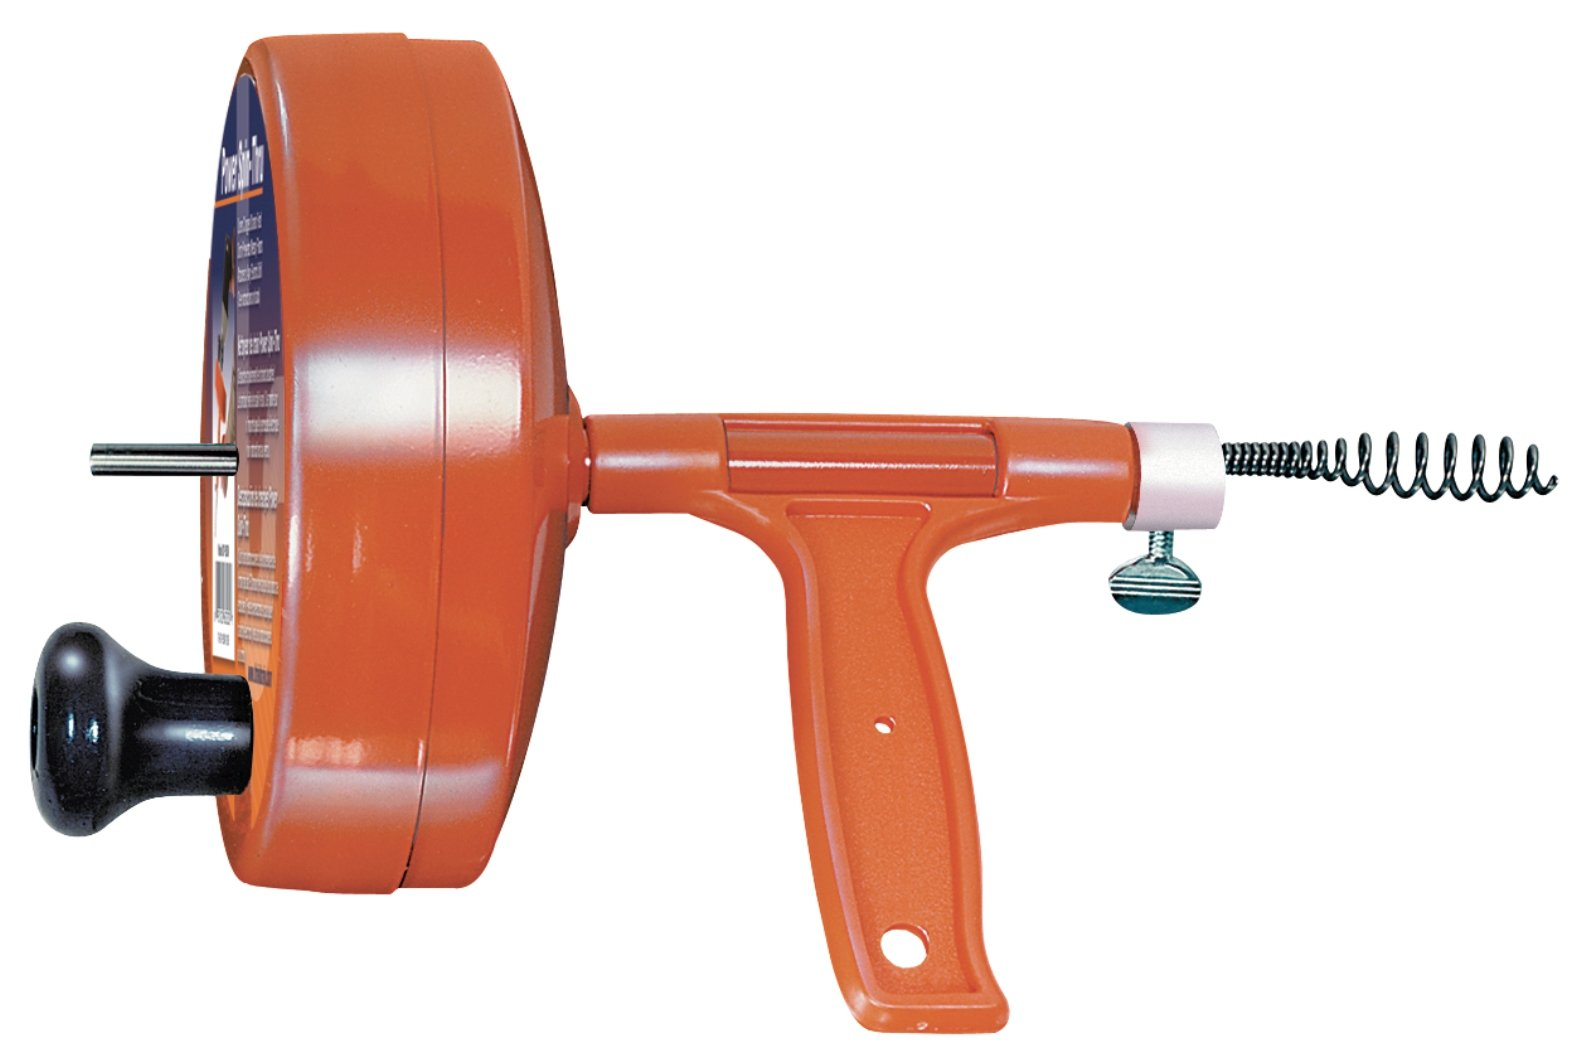 25 ft. x 1/4 in. Power Deluxe Spin-Thru by General Pipe Cleaners